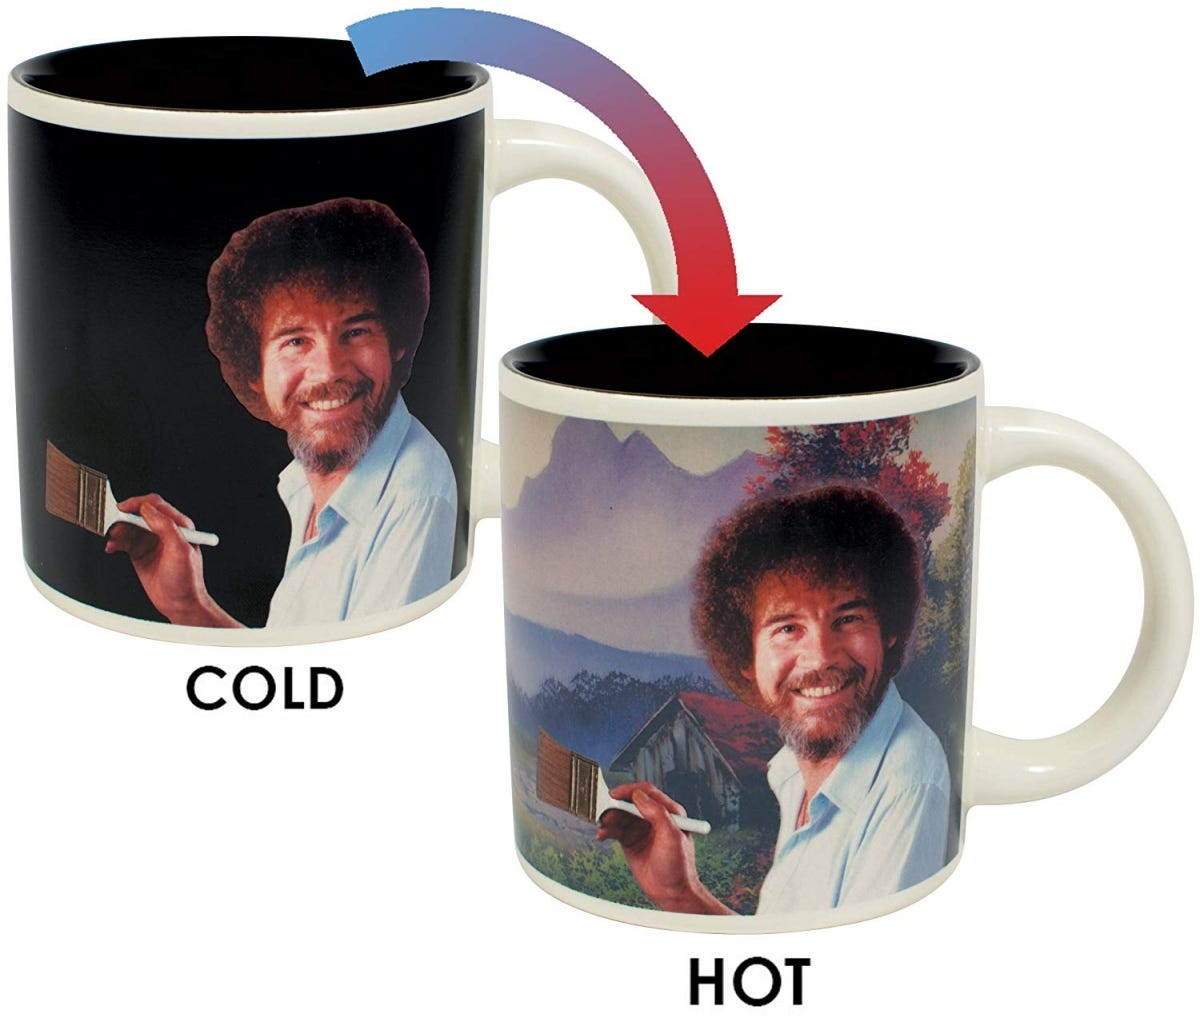 A color-changing mug featuring Bob Ross.